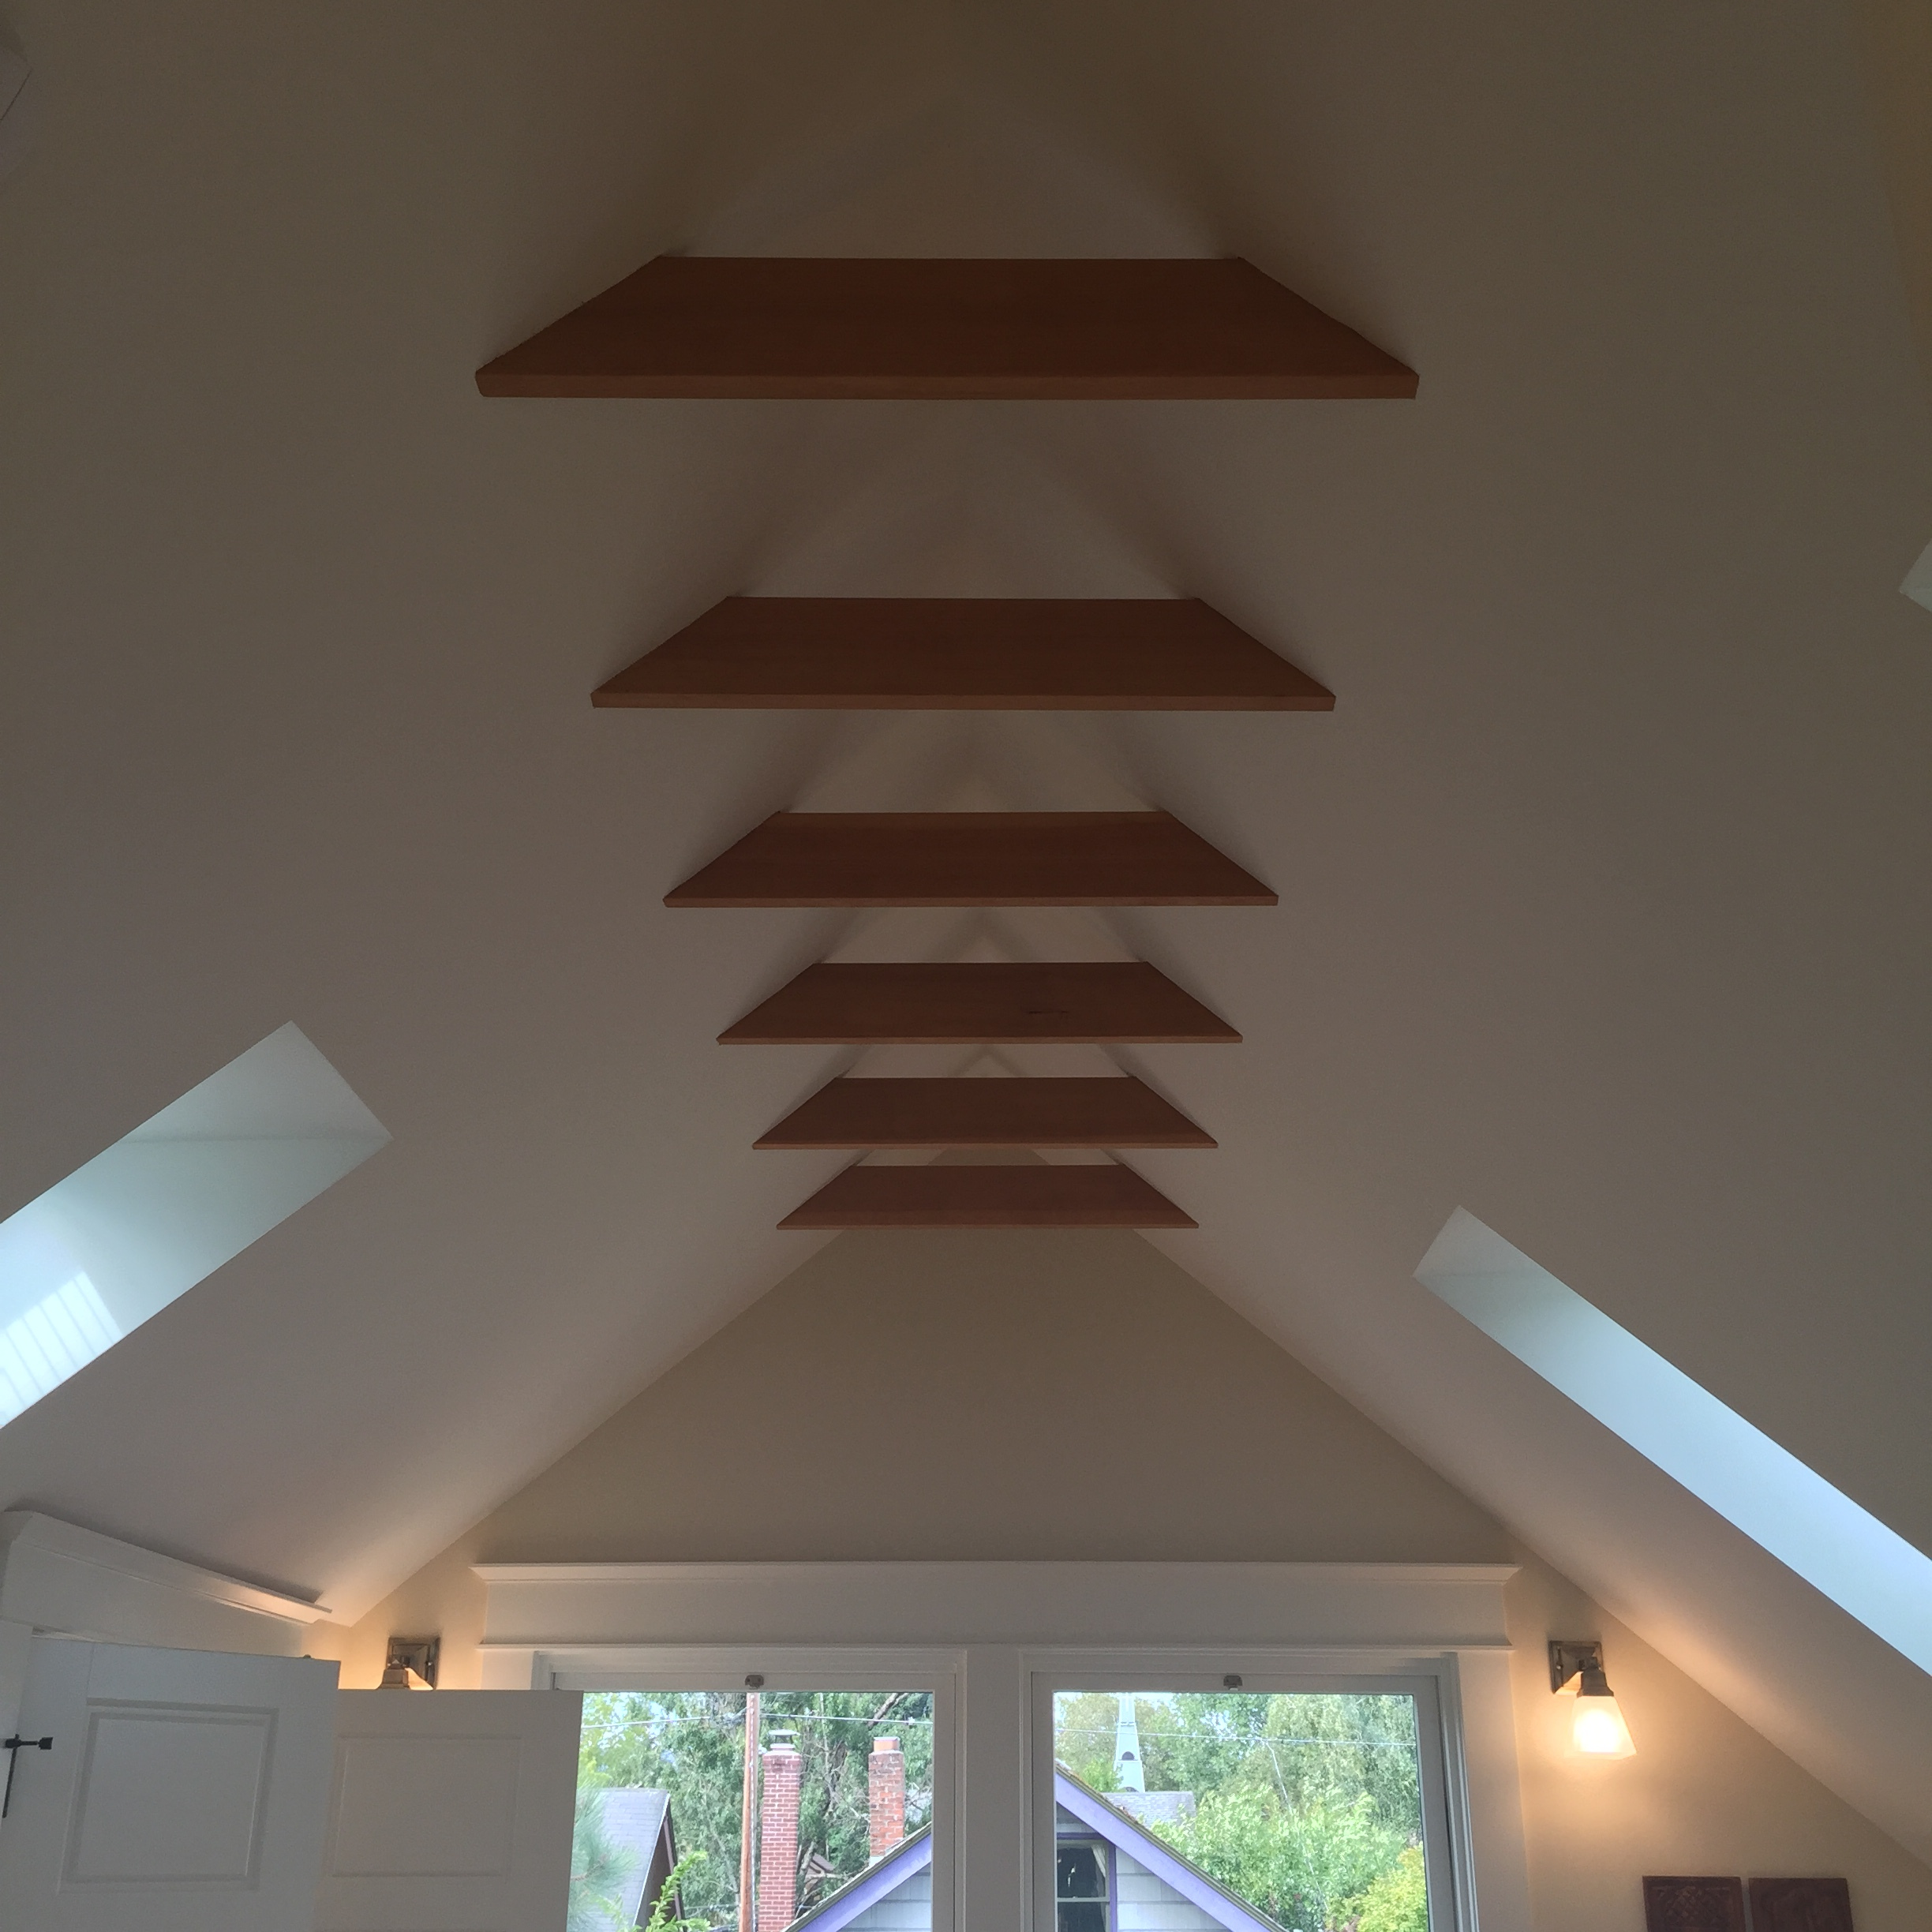 I died over the ceiling beams in this SE Portland home. They were subtle but they definitely made a statement.